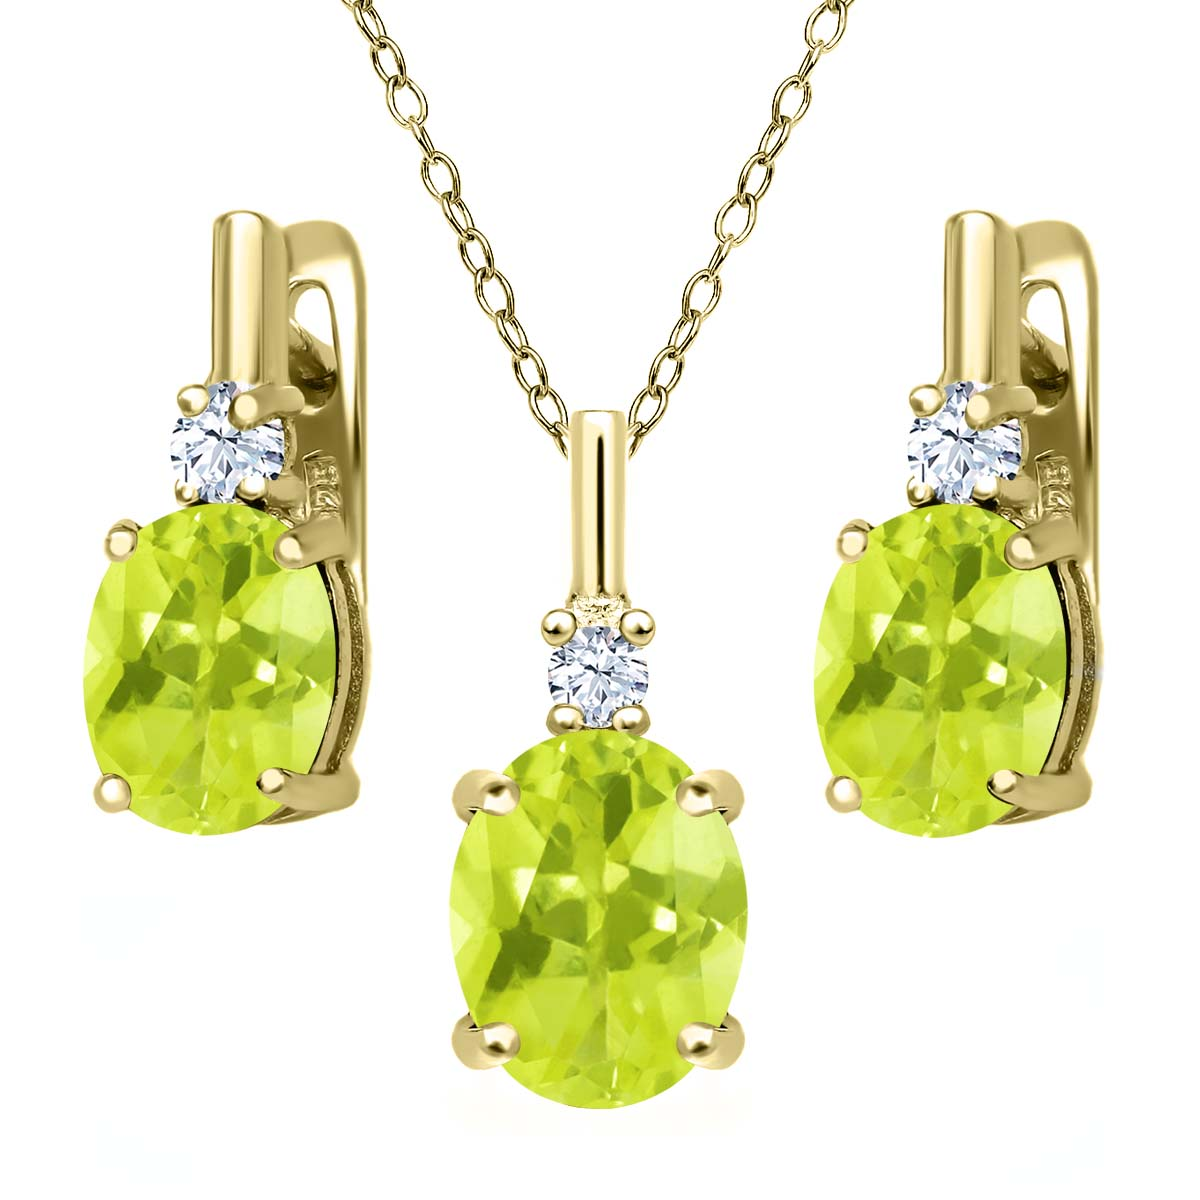 5.03 Ct Yellow Lemon Quartz White Topaz 18K Yellow Gold Plated Silver Pendant Earrings Set by